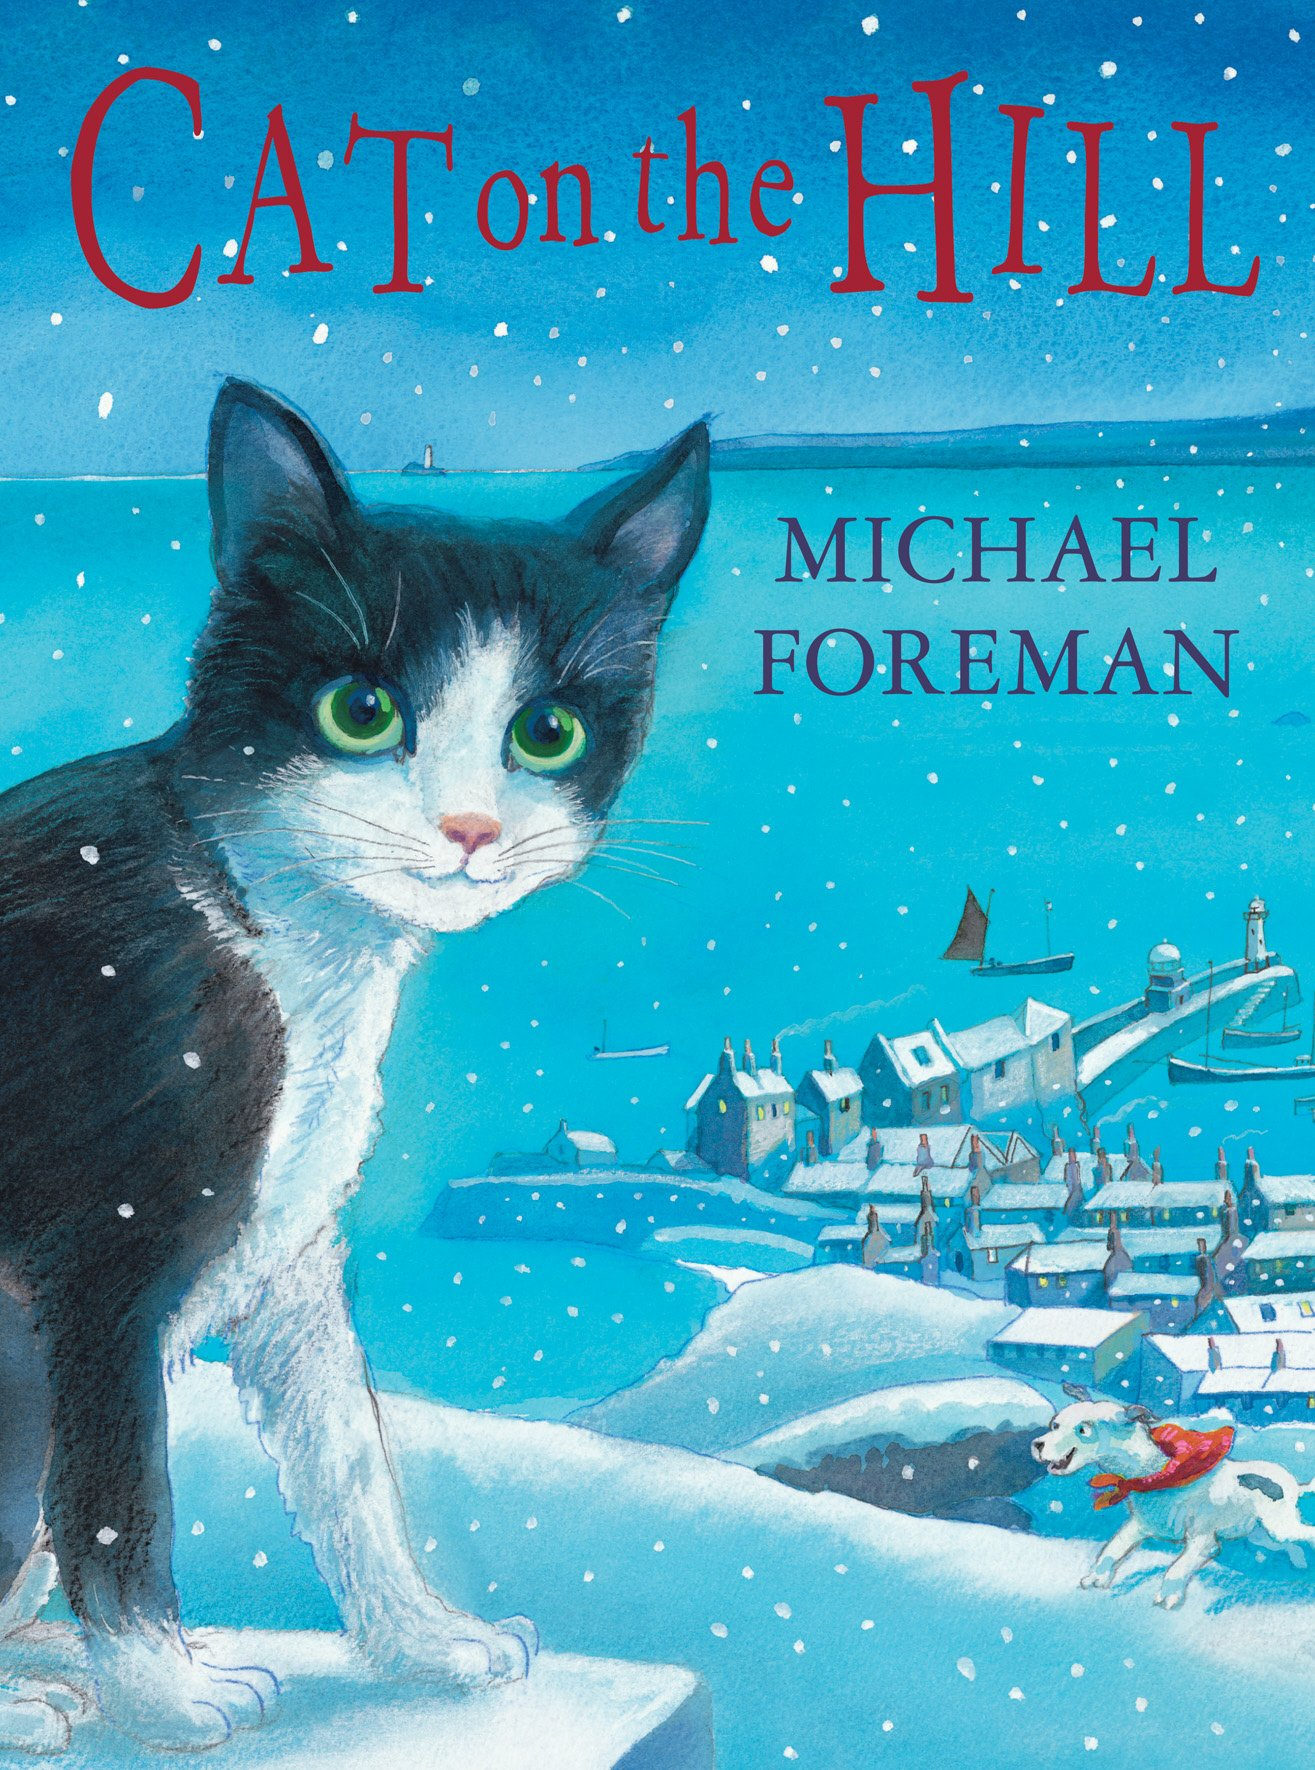 Cat on the Hill: Amazon.co.uk: Foreman, Michael: 9781842704714: Books